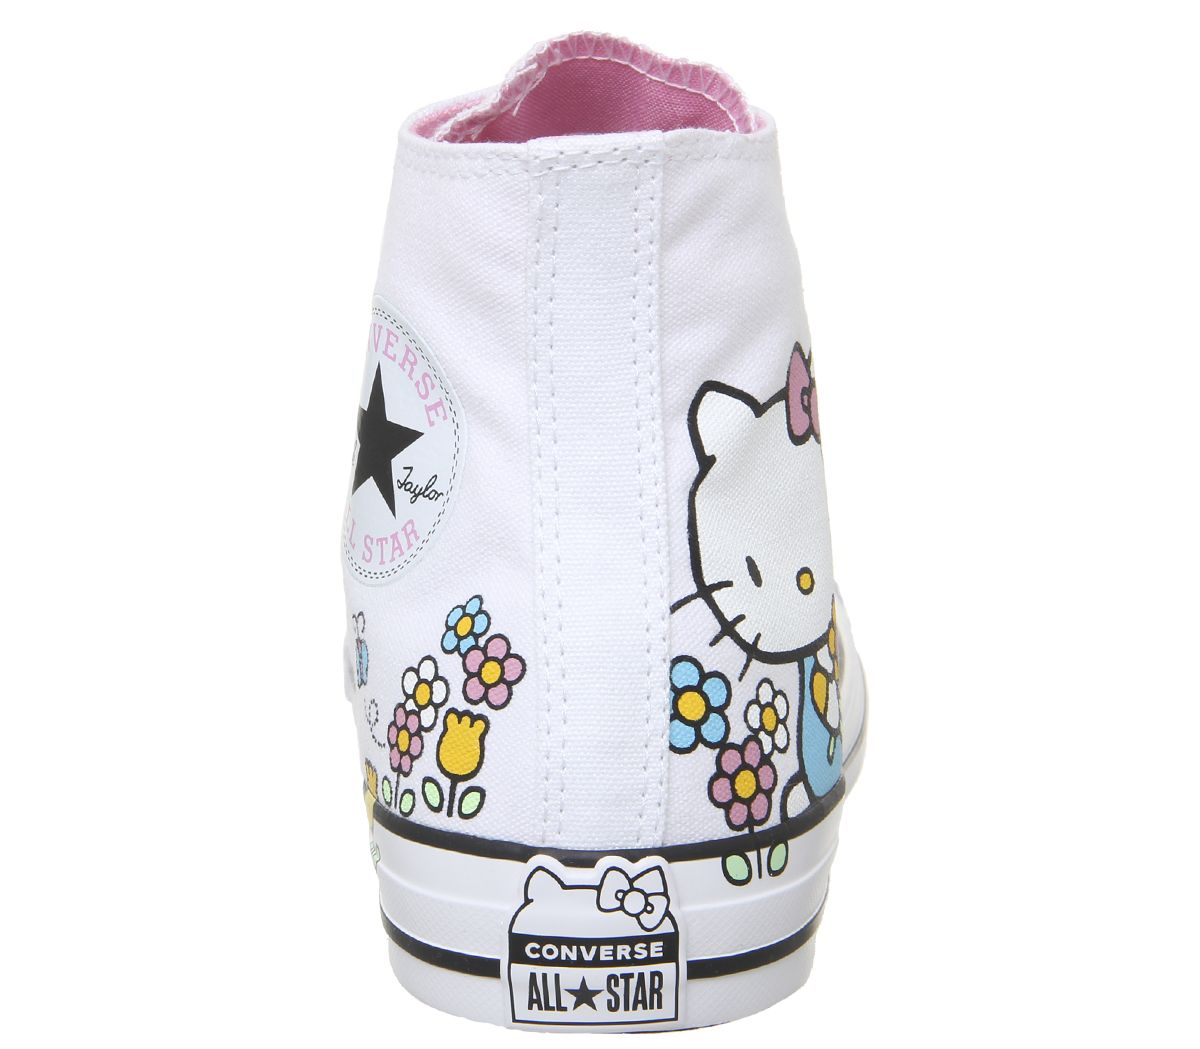 d7b6d5d0f57fc Sentinel Womens Converse Converse All Star Hi Trainers Hello Kitty White  Trainers Shoes